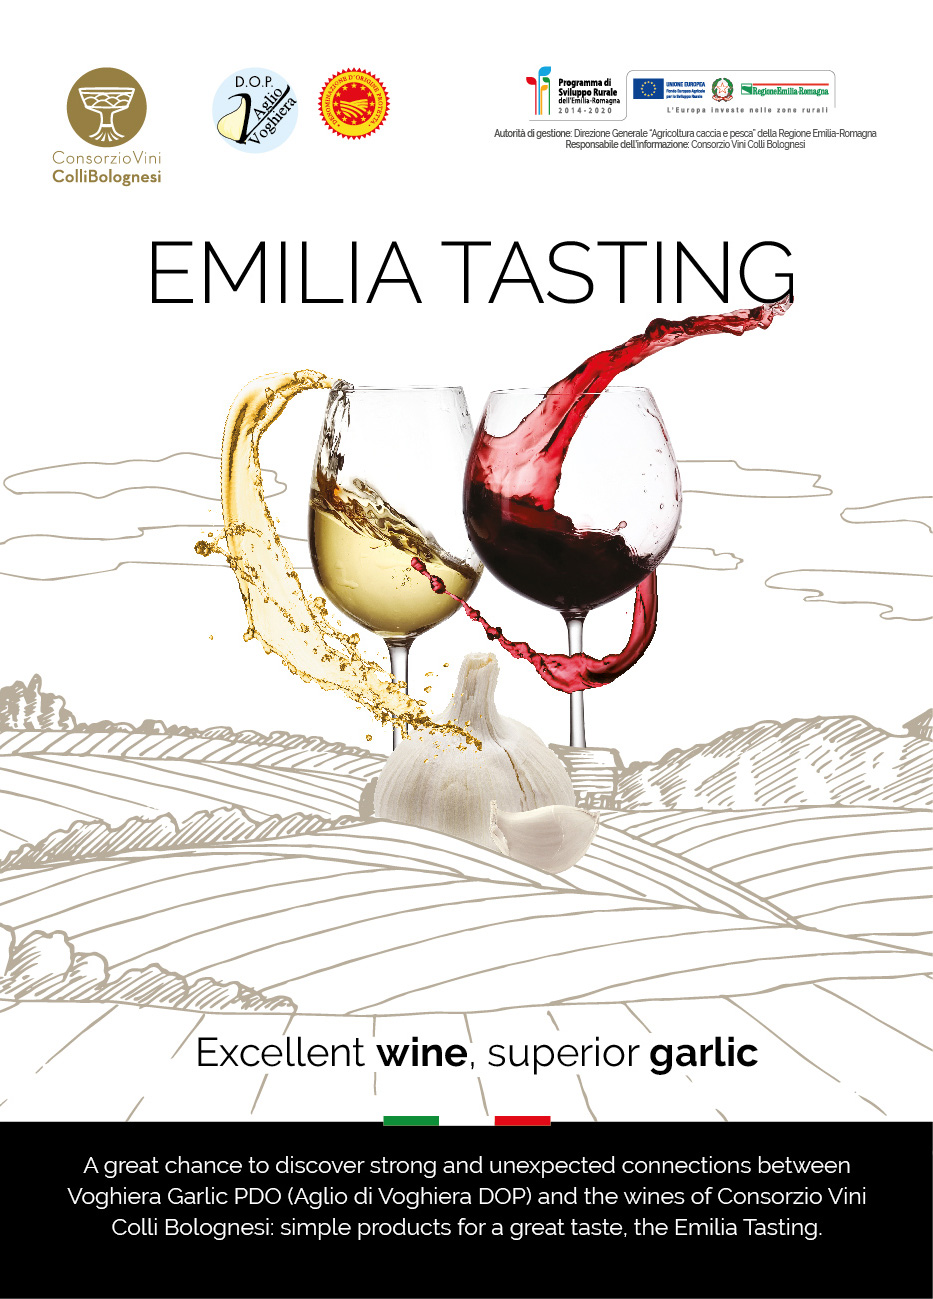 Tasting event -Wine and garlic - Wednesday 8th May4PM-8PMA very exclusive event to learn about Emilia area (Emilia-Romagna region): this is where territory, culture and tradition come together in a perfect union for the mostdistinguishing features of Voghiera Garlic PDO (Aglio di Voghiera DOP) and Colli Bolognesi PDO wines.